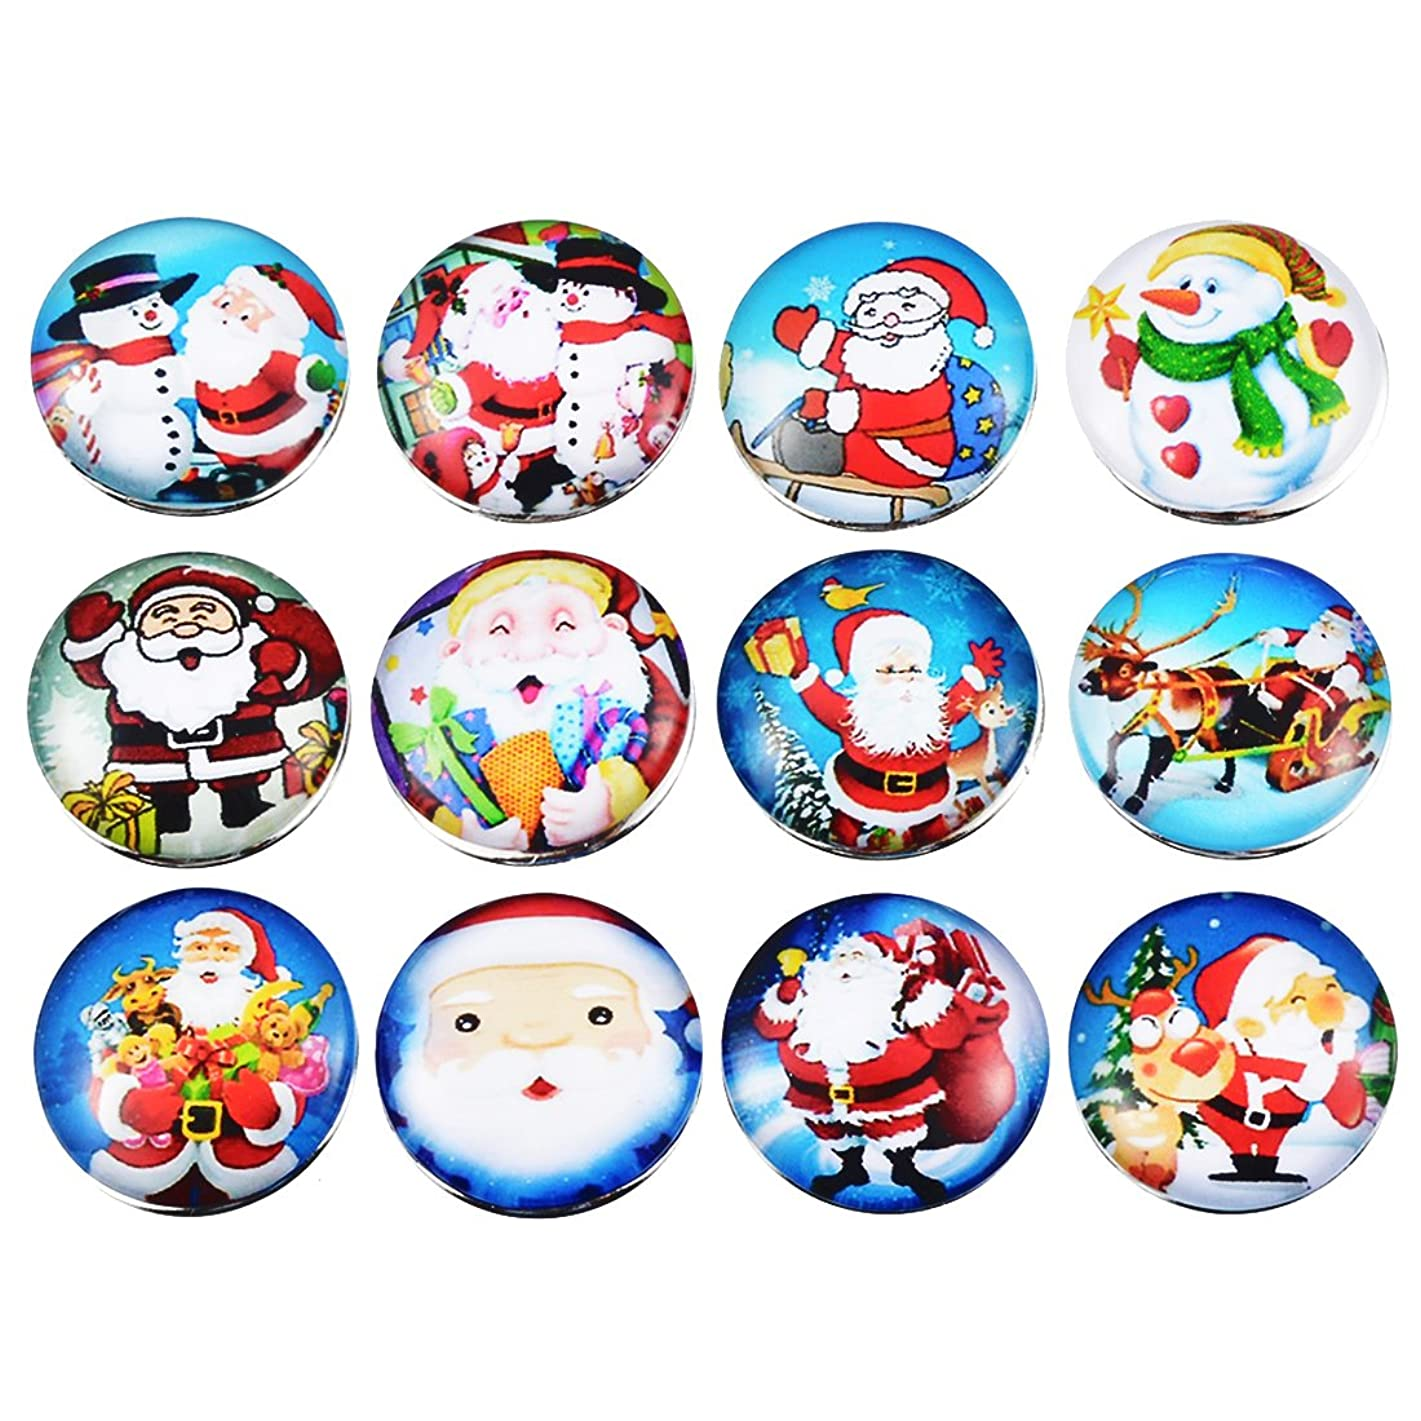 Souarts Solid Mixed Colorful Christmas Snowman Santa Claus Pattern DIY Snap Button Jewelry Charms 18mm Pack of 12pcs